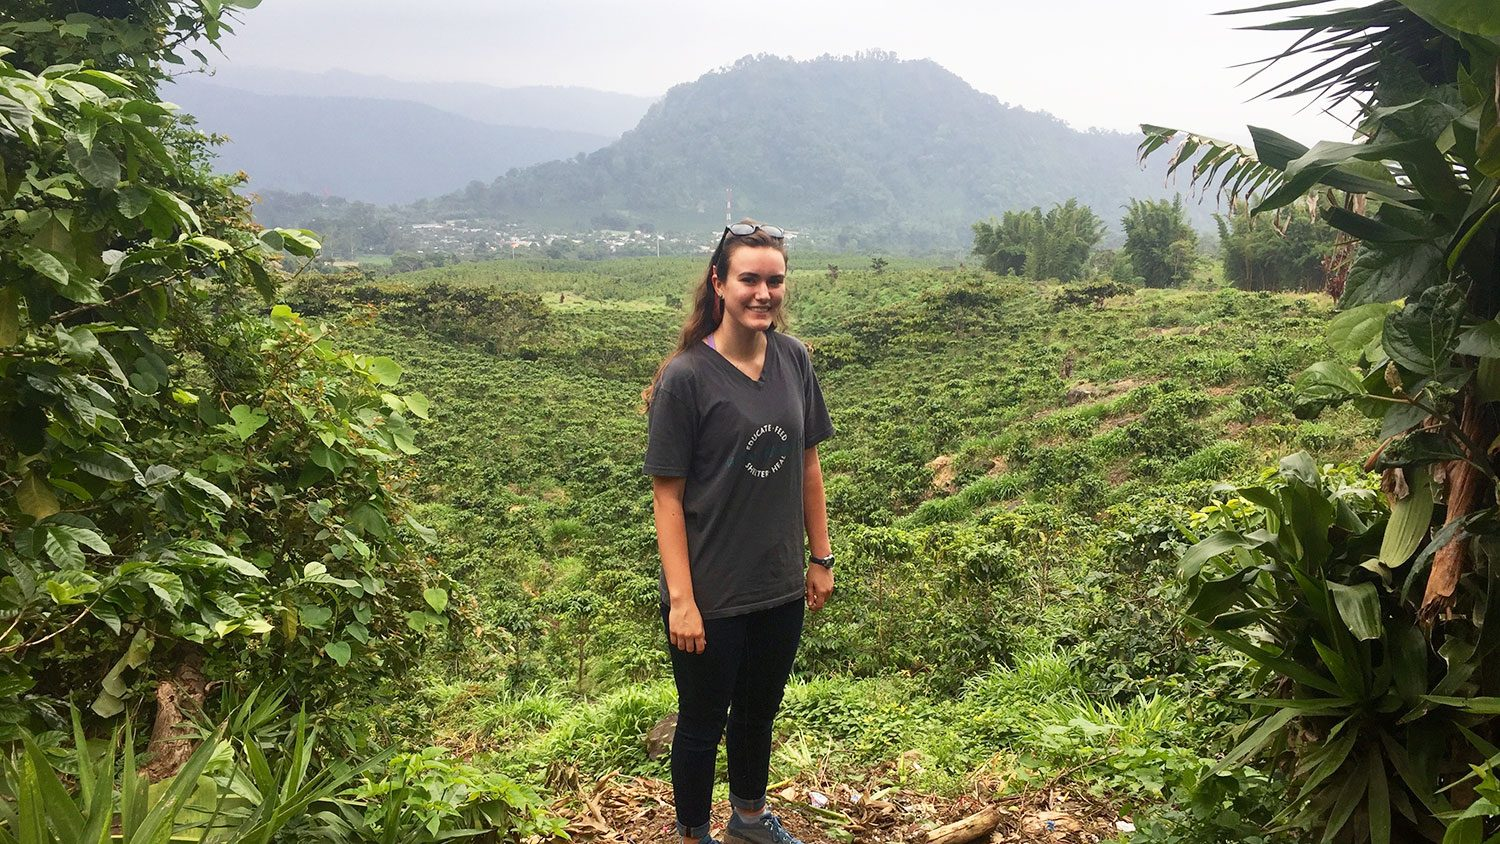 CALS student Kati Scruggs standing in the Guatemalan landscape